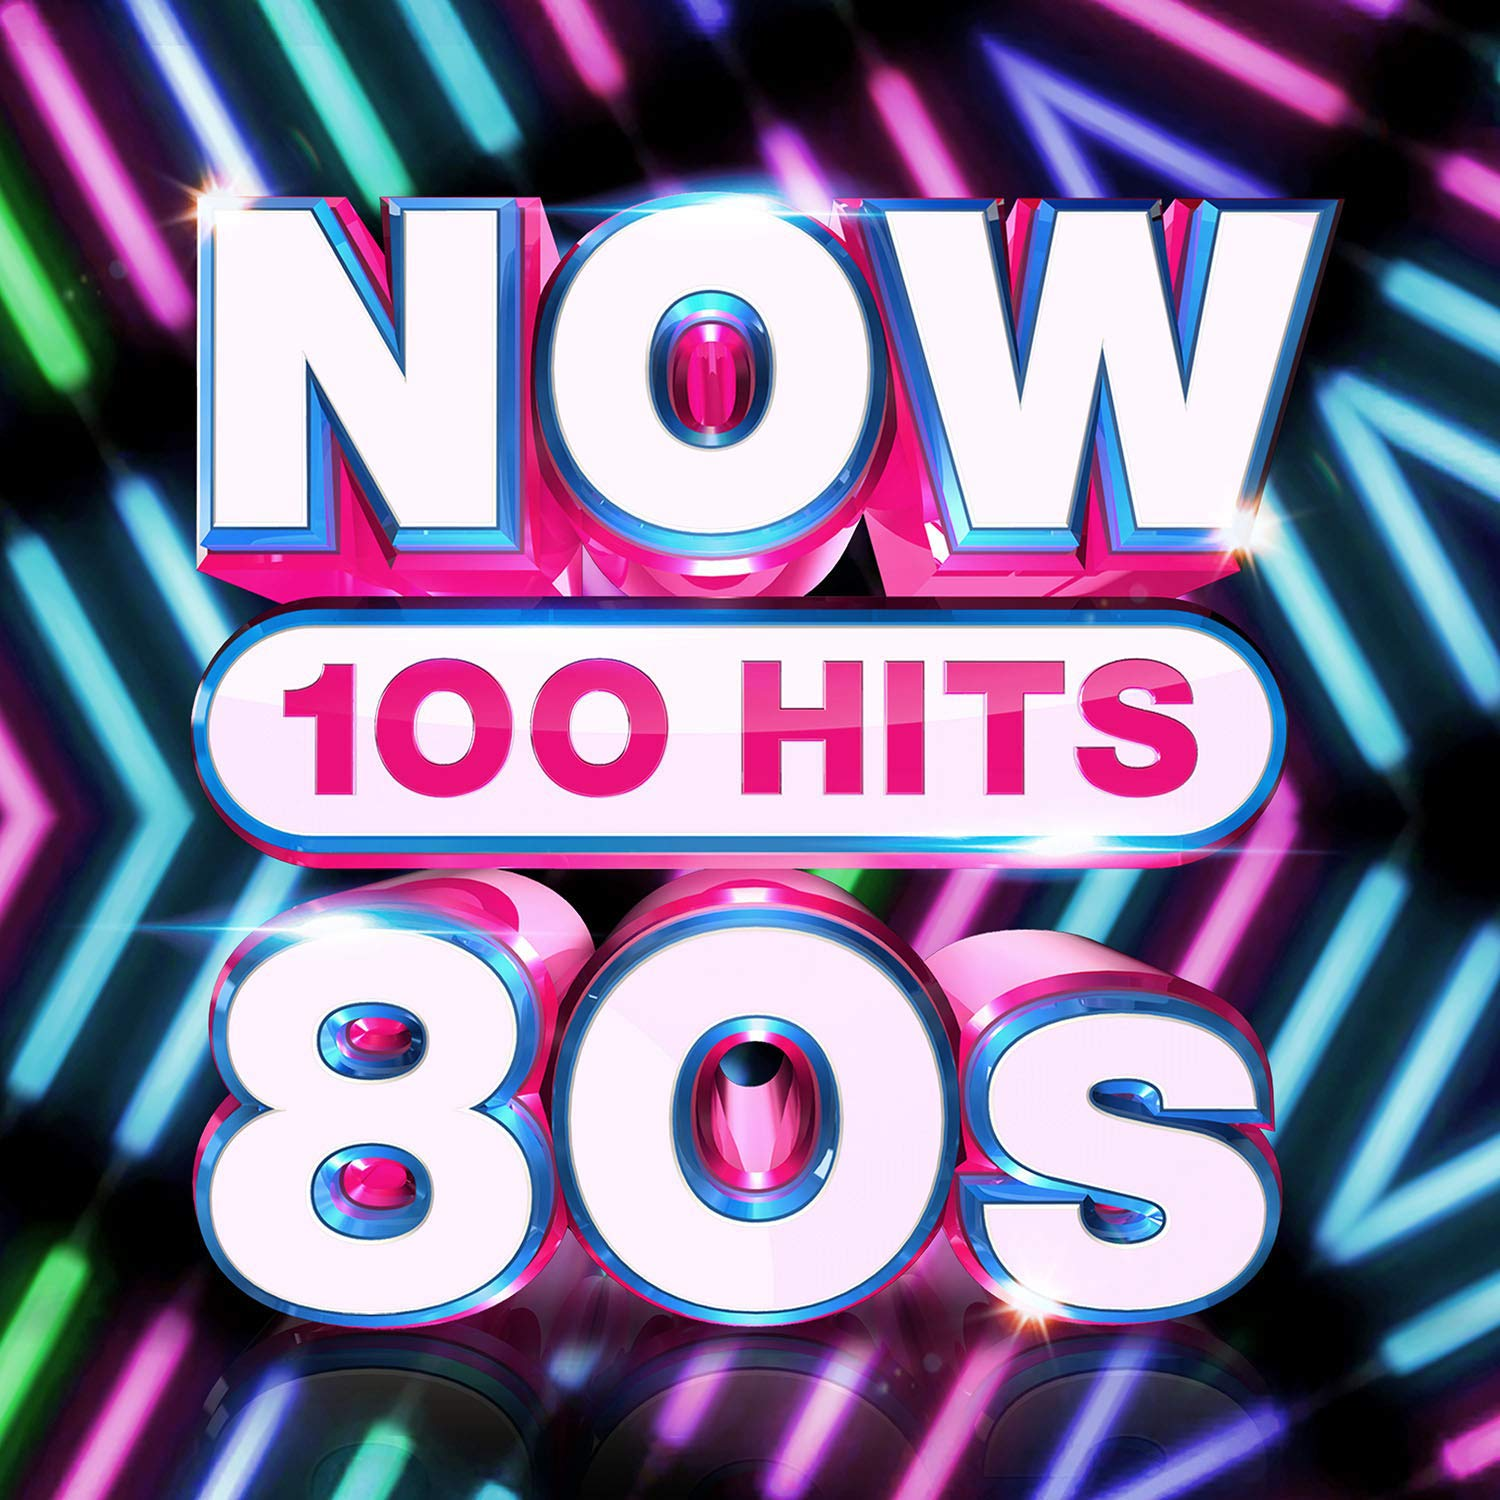 Download VA - NOW 100 Hits 80s (2019) MP3 - SoftArchive